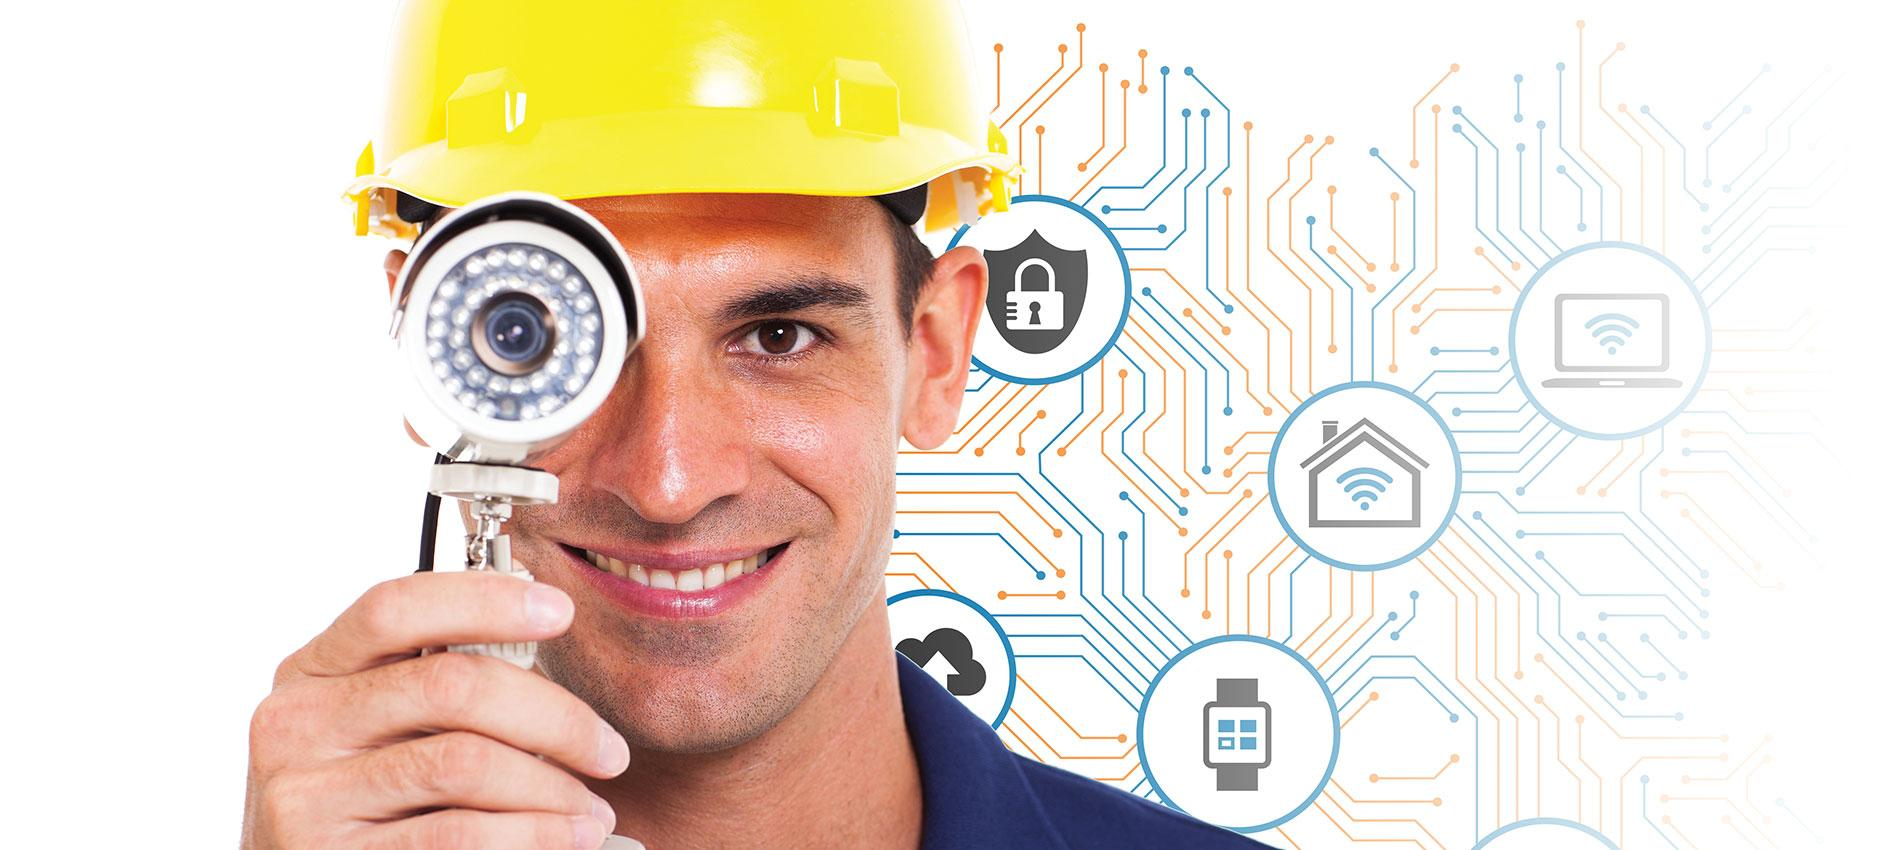 Embracing Change in Security: How Contractors Can Successfully Adapt